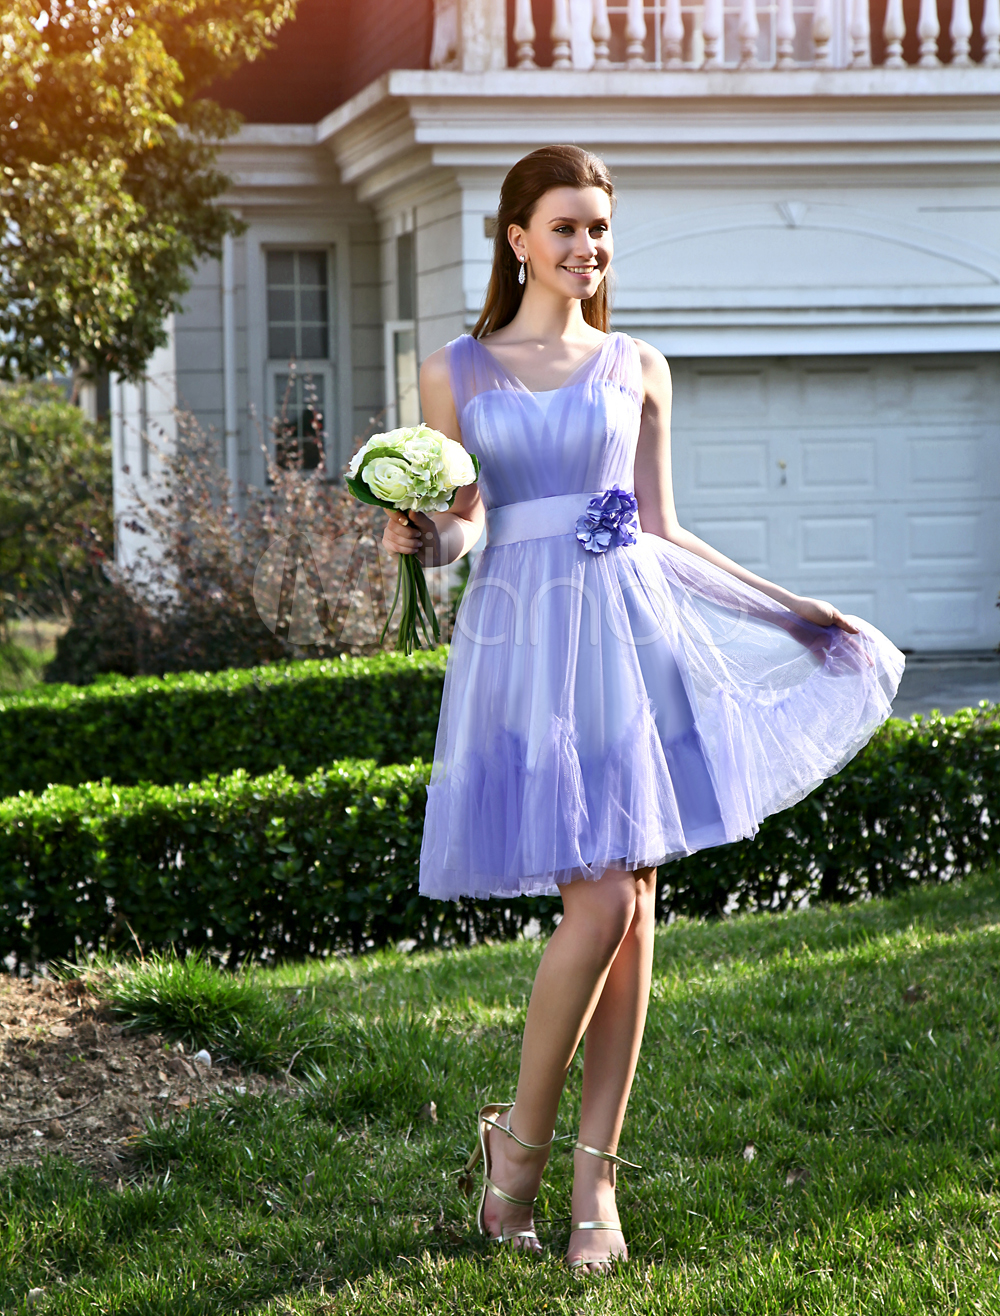 Charming-A-line-Lavender-Tulle-Flower-V-Neck-Knee-Length-Womens-Prom-Dress-282300-1298684